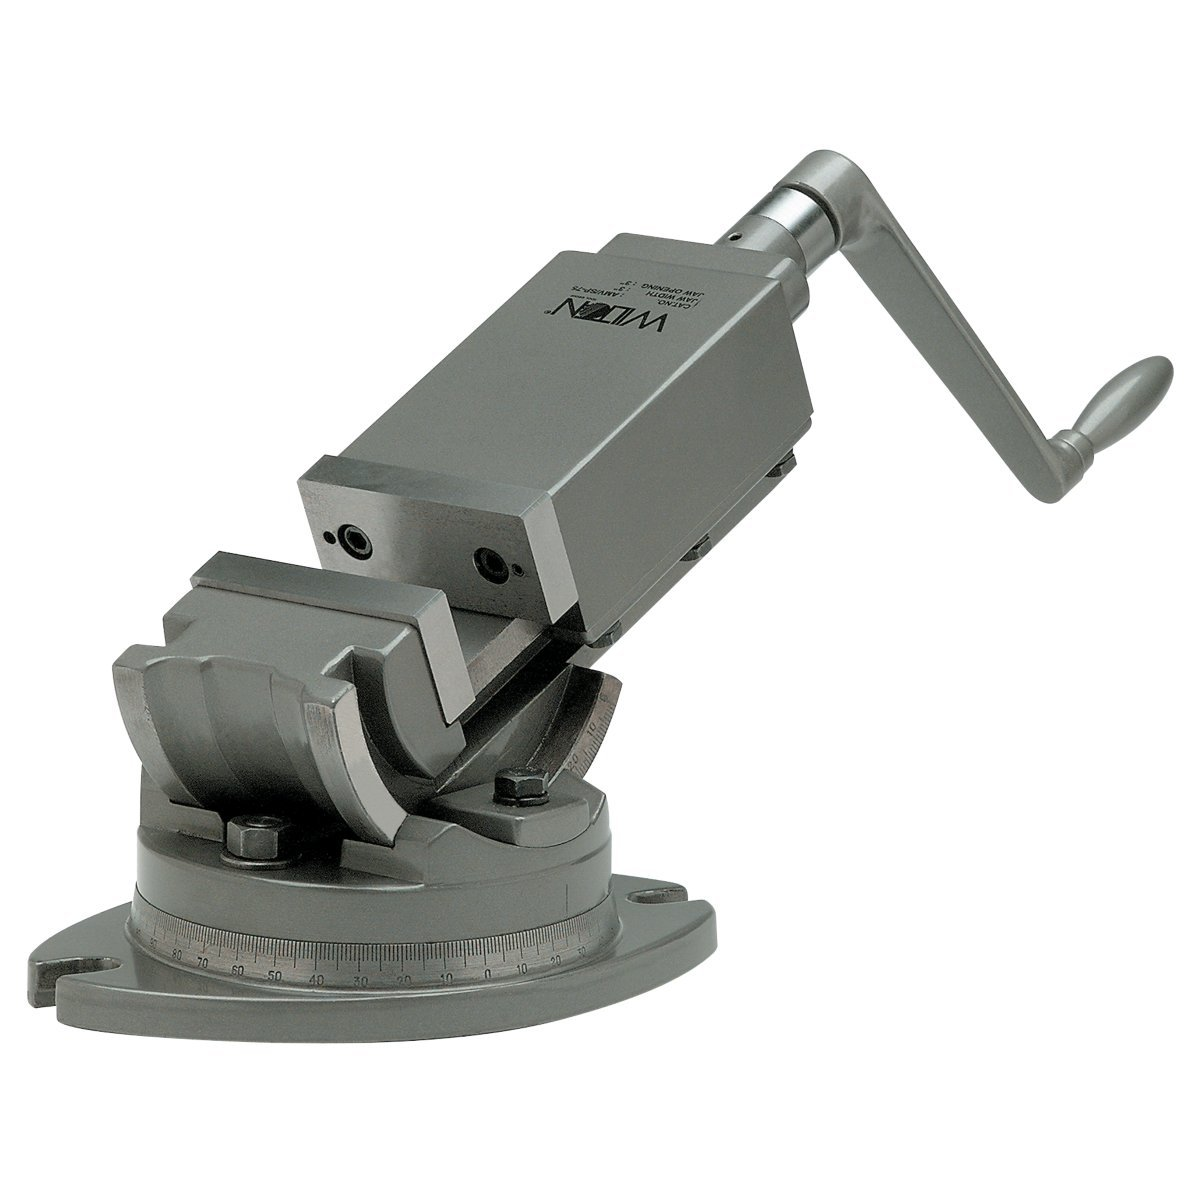 Wilton 11704 2-Axis Precision Angular Vise 3-Inch Jaw Opening, 1-5/16-Inch Jaw Depth by Wilton